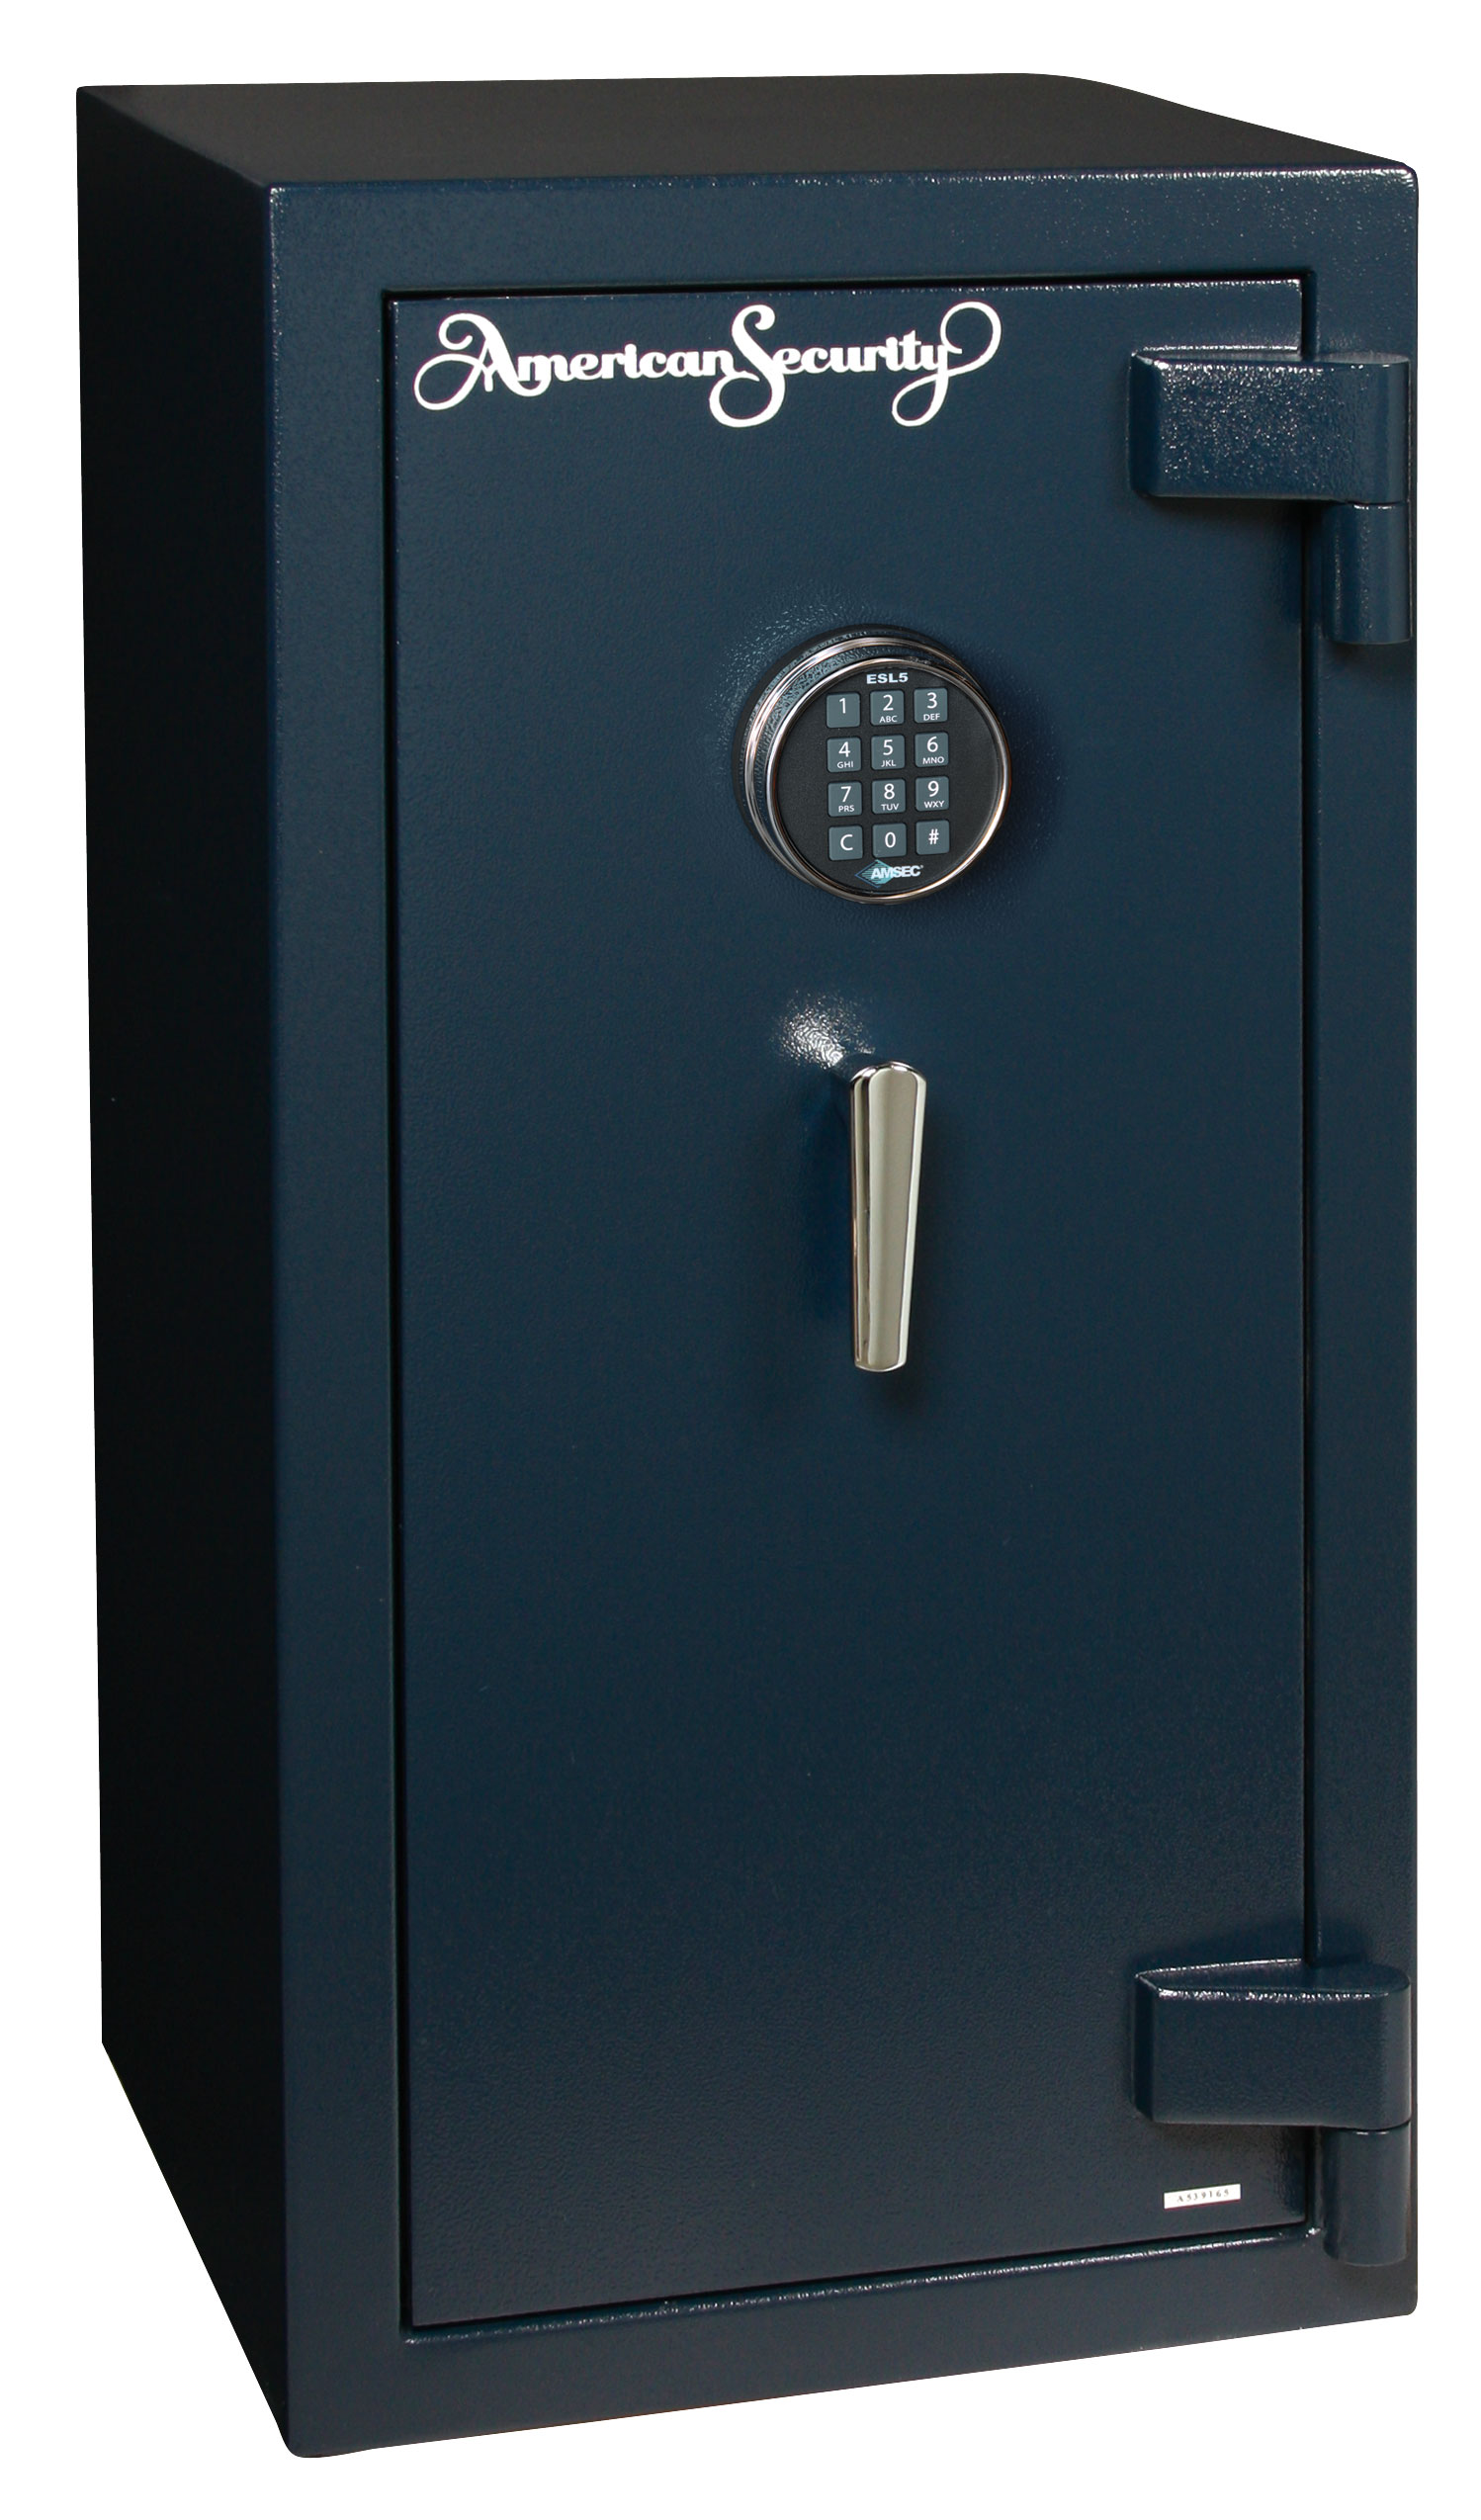 American security am4020e5 fire resistant home security for Safe and secure products